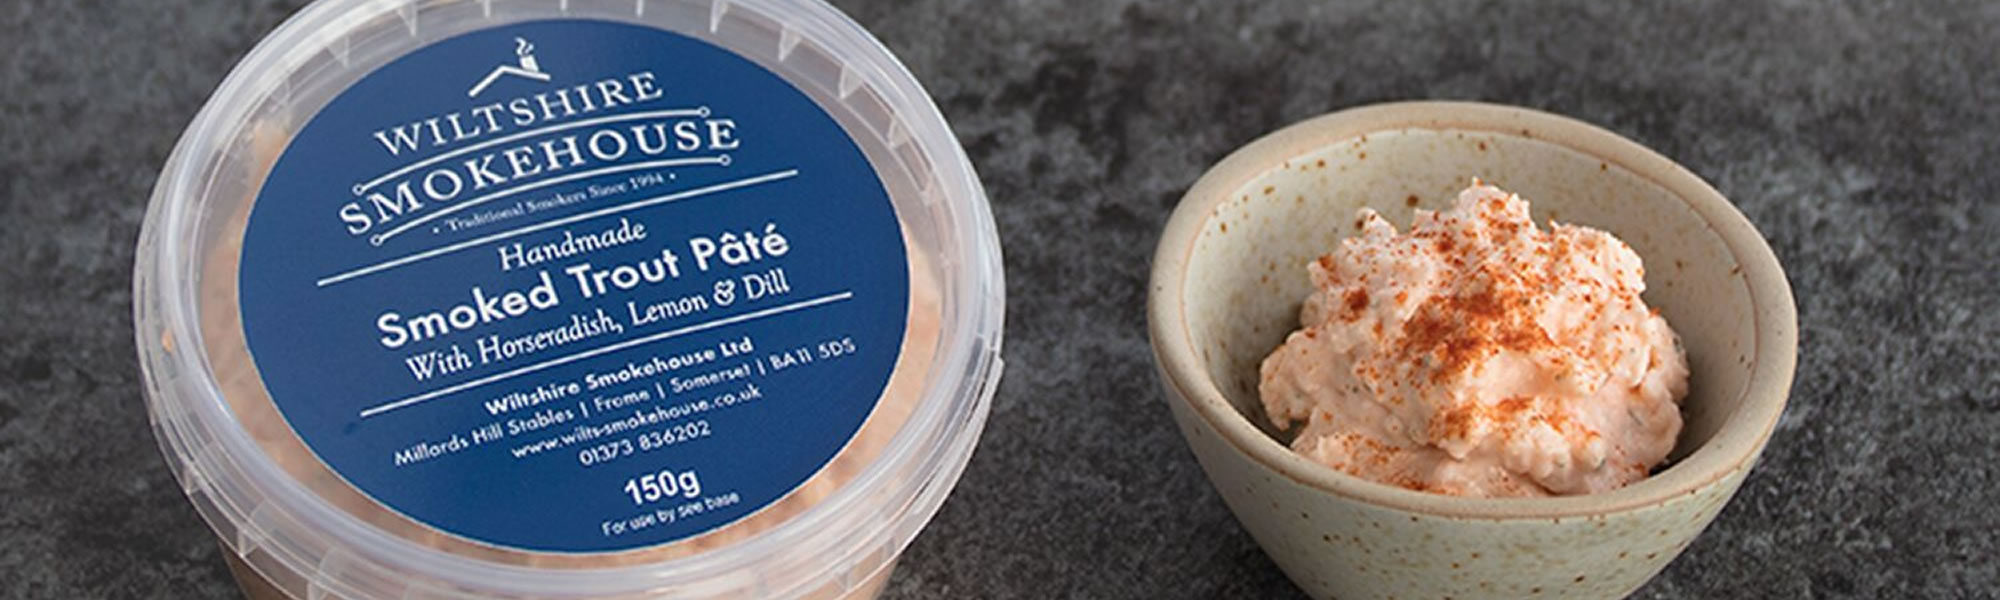 banner-Smoked-Trout-Pate